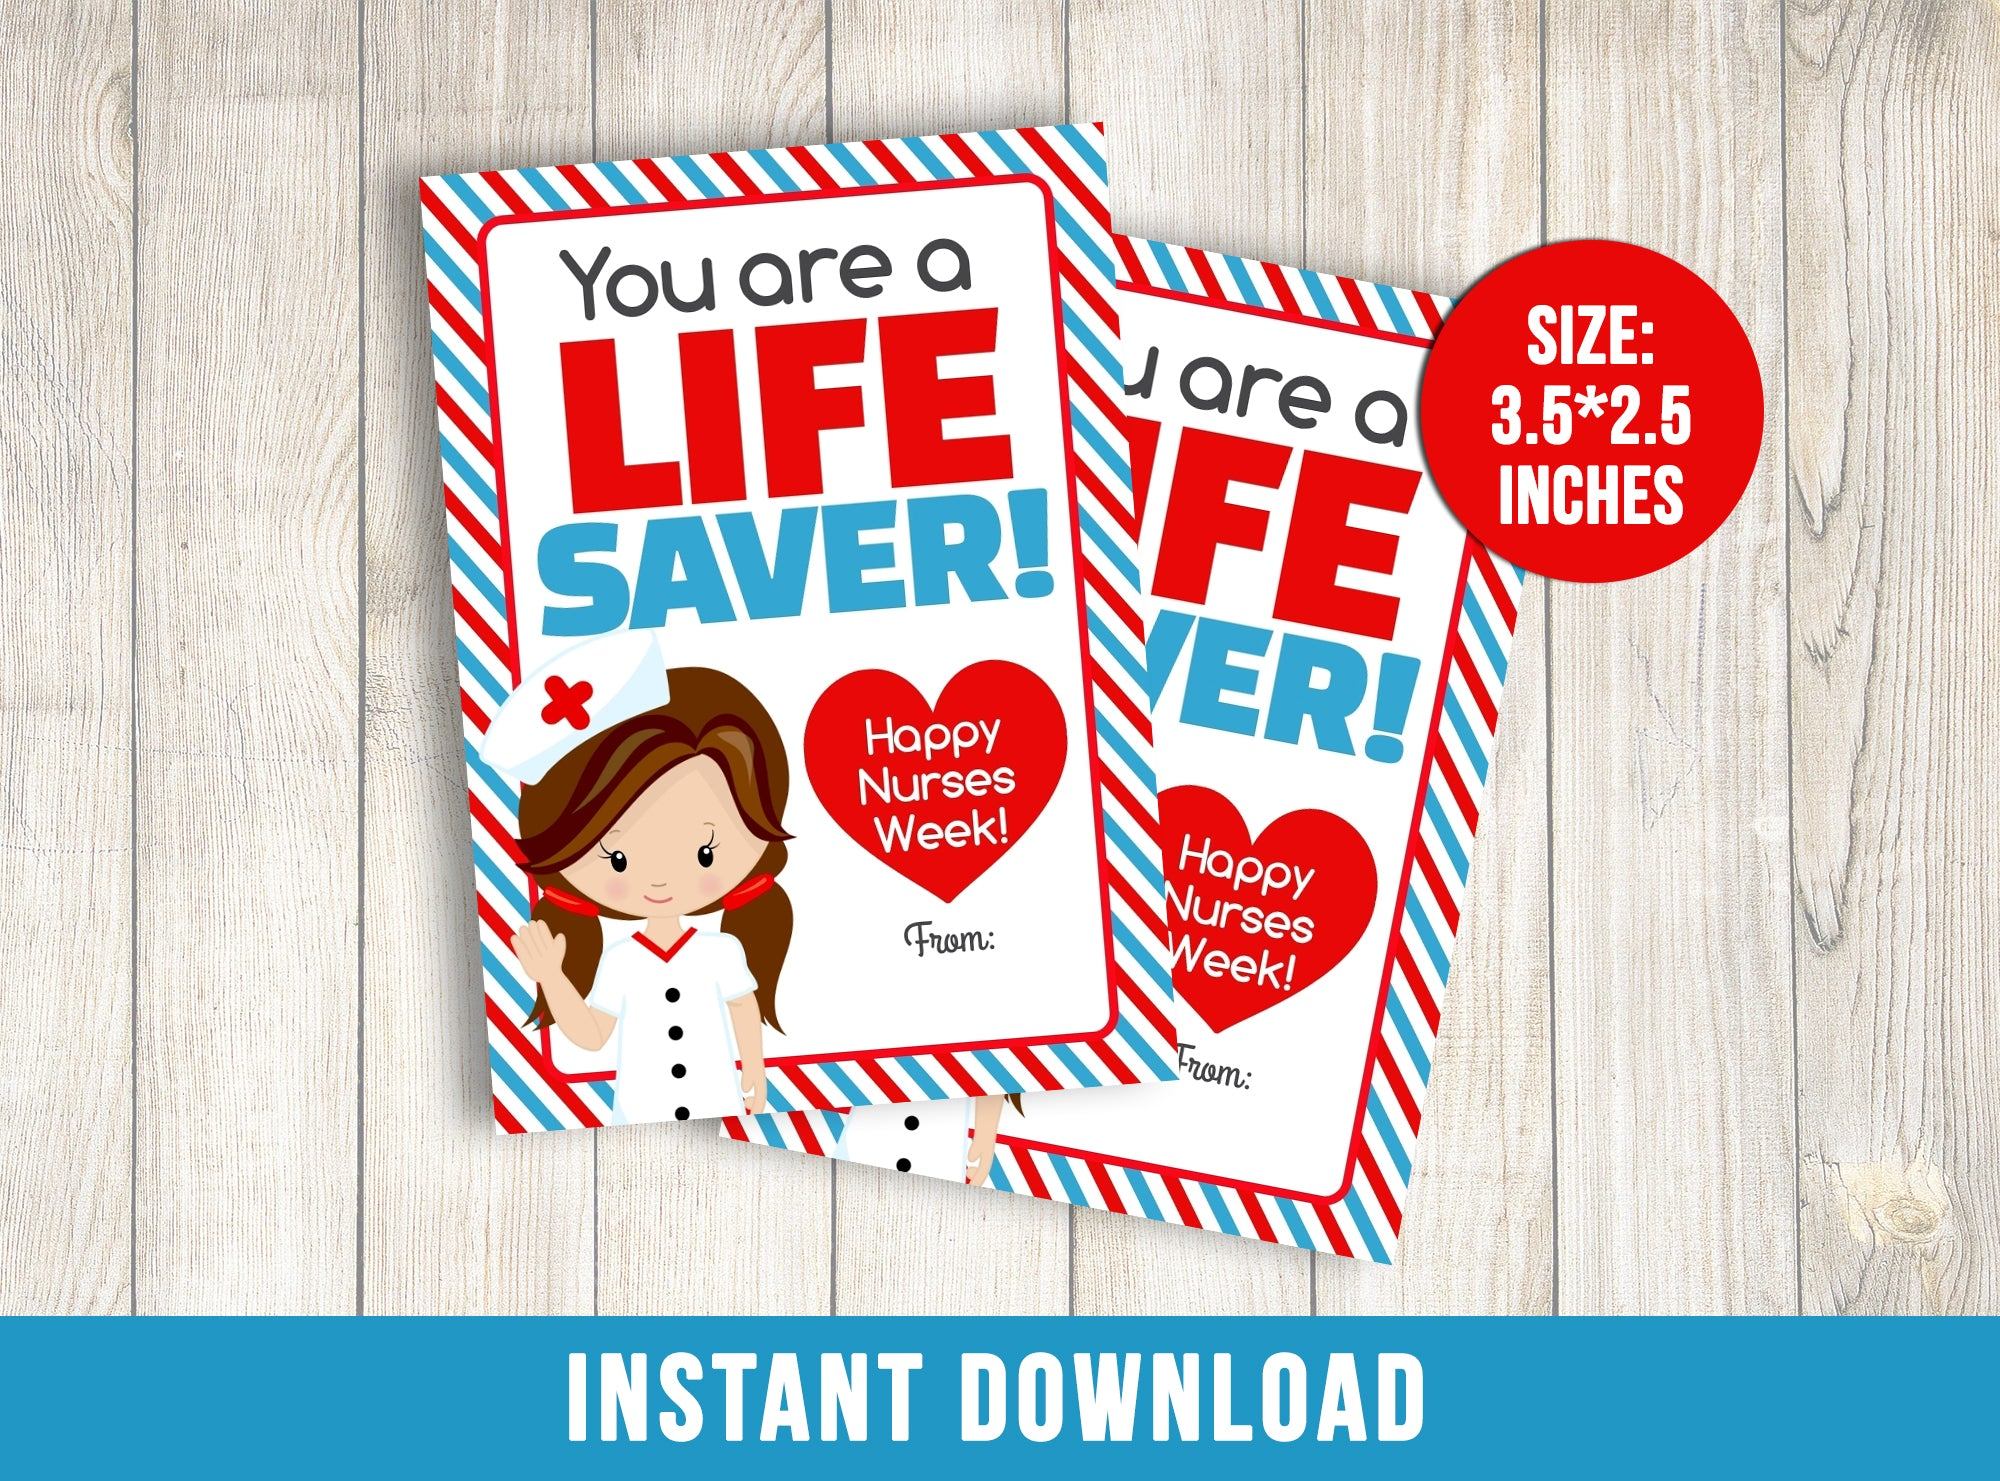 Lifesaver Nurse Appreciation Day Card, Healthcare Heroes Thank you Gift Tags, Doctor, Hospital, Medical INSTANT DOWNLOAD - TitaTipsPrintables